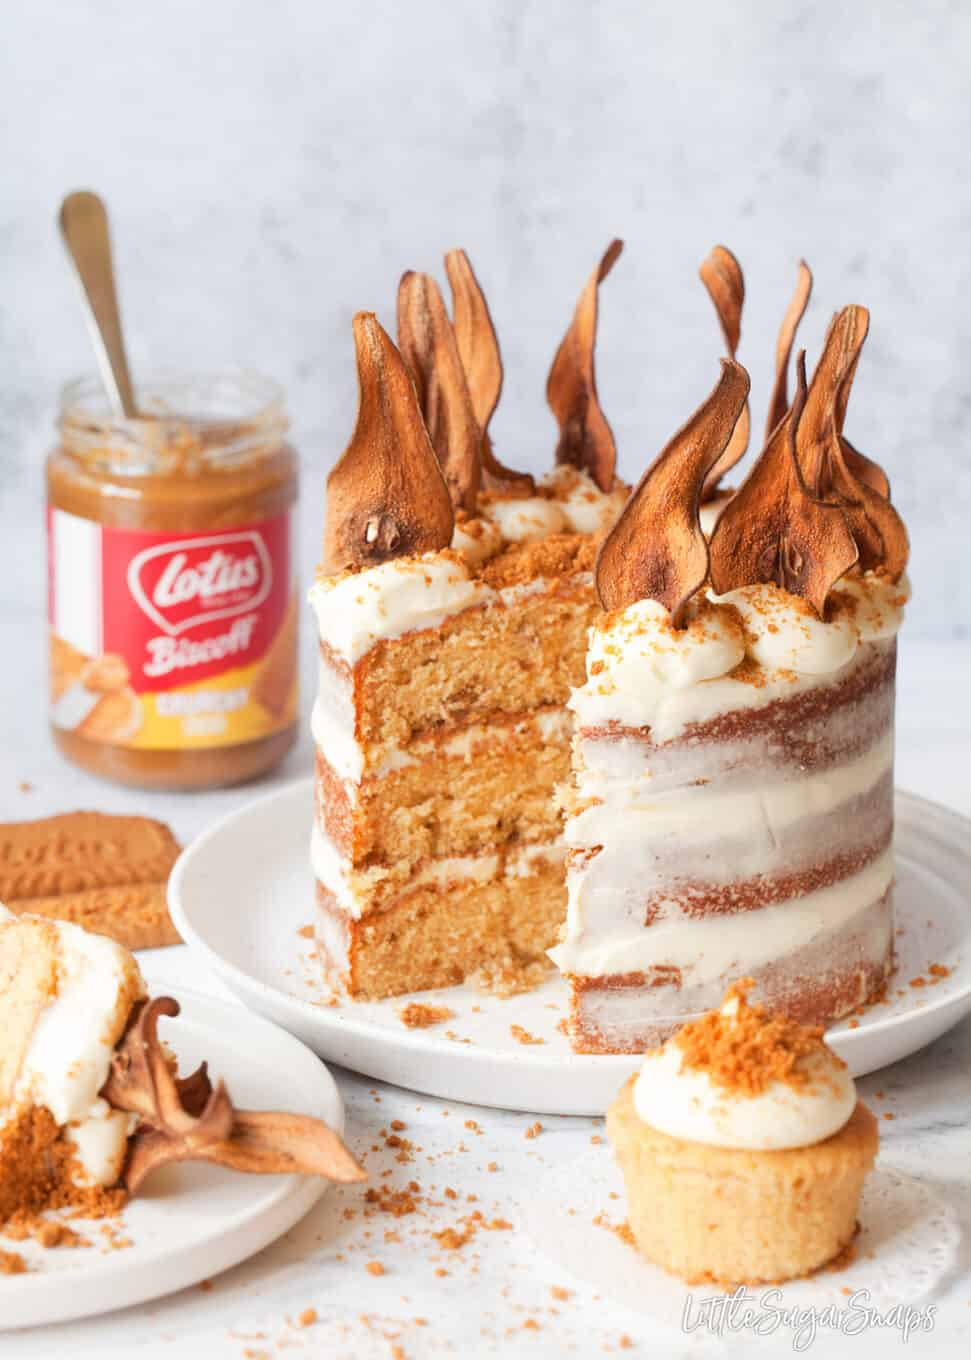 Cut into triple layer Biscoff cake with pear wafers adorning the top.